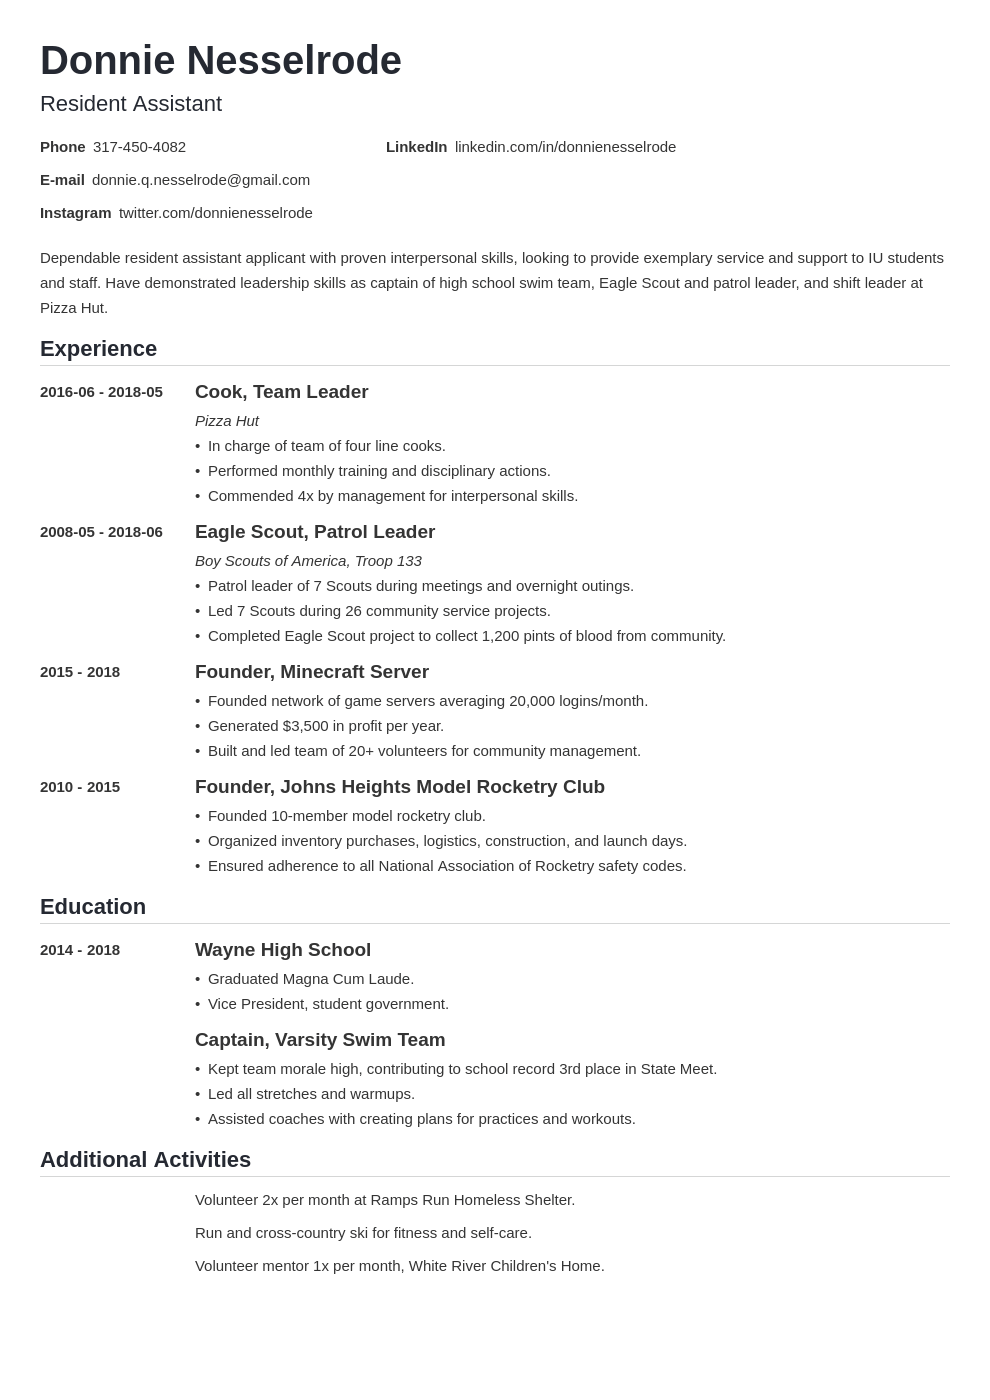 Resident Assistant Resume Example Template Nanica Resume Examples Best Resume Format Resident Assistant